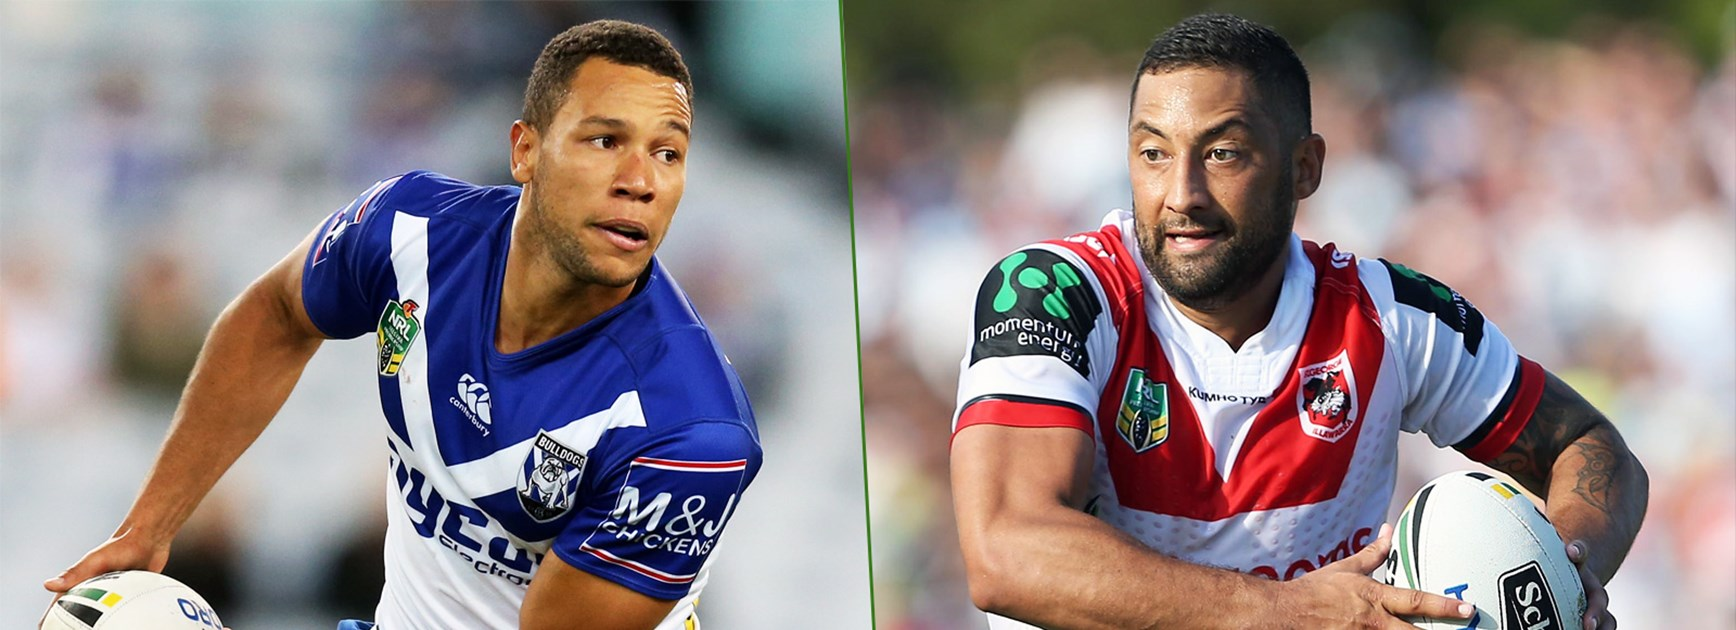 Rival halfbacks Moses Mbye and Benji Marshall.